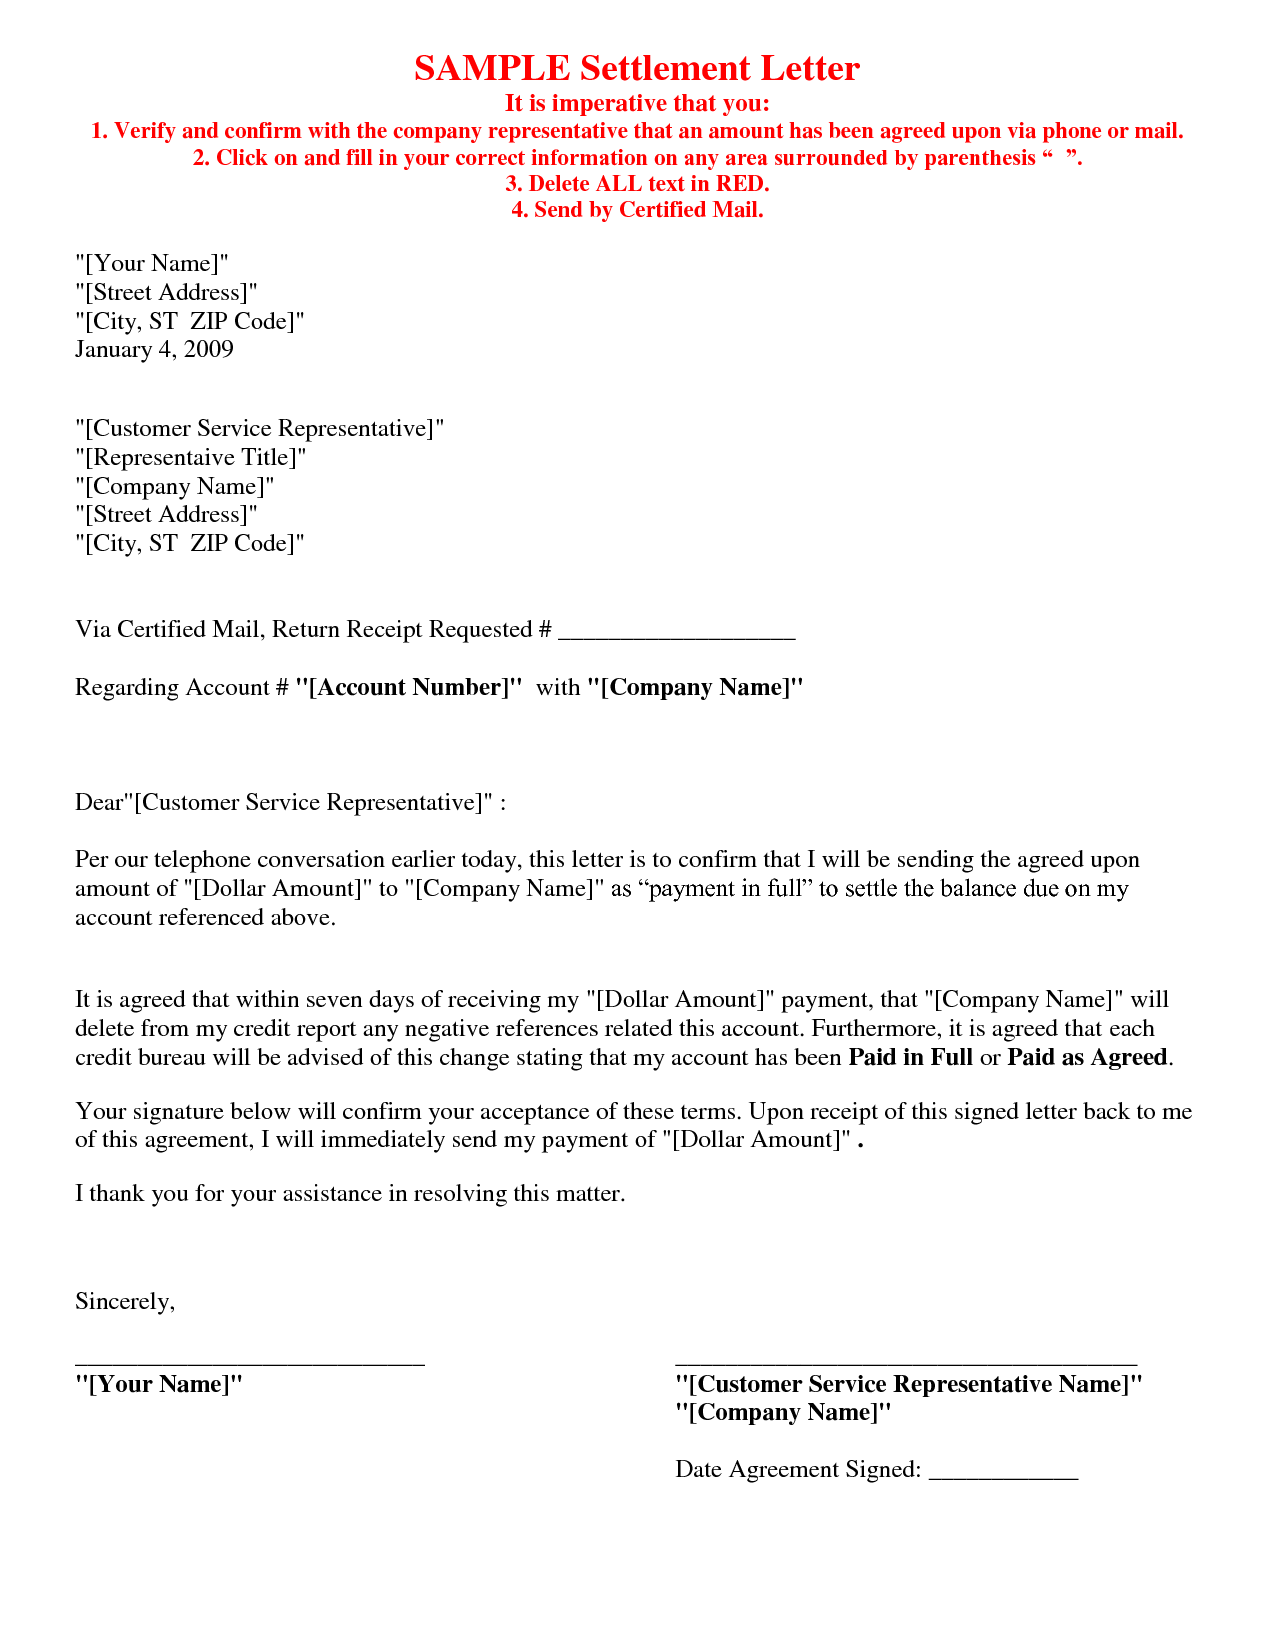 Picture {5} of {17} - Debt Settlement Agreement Letter Sample ...